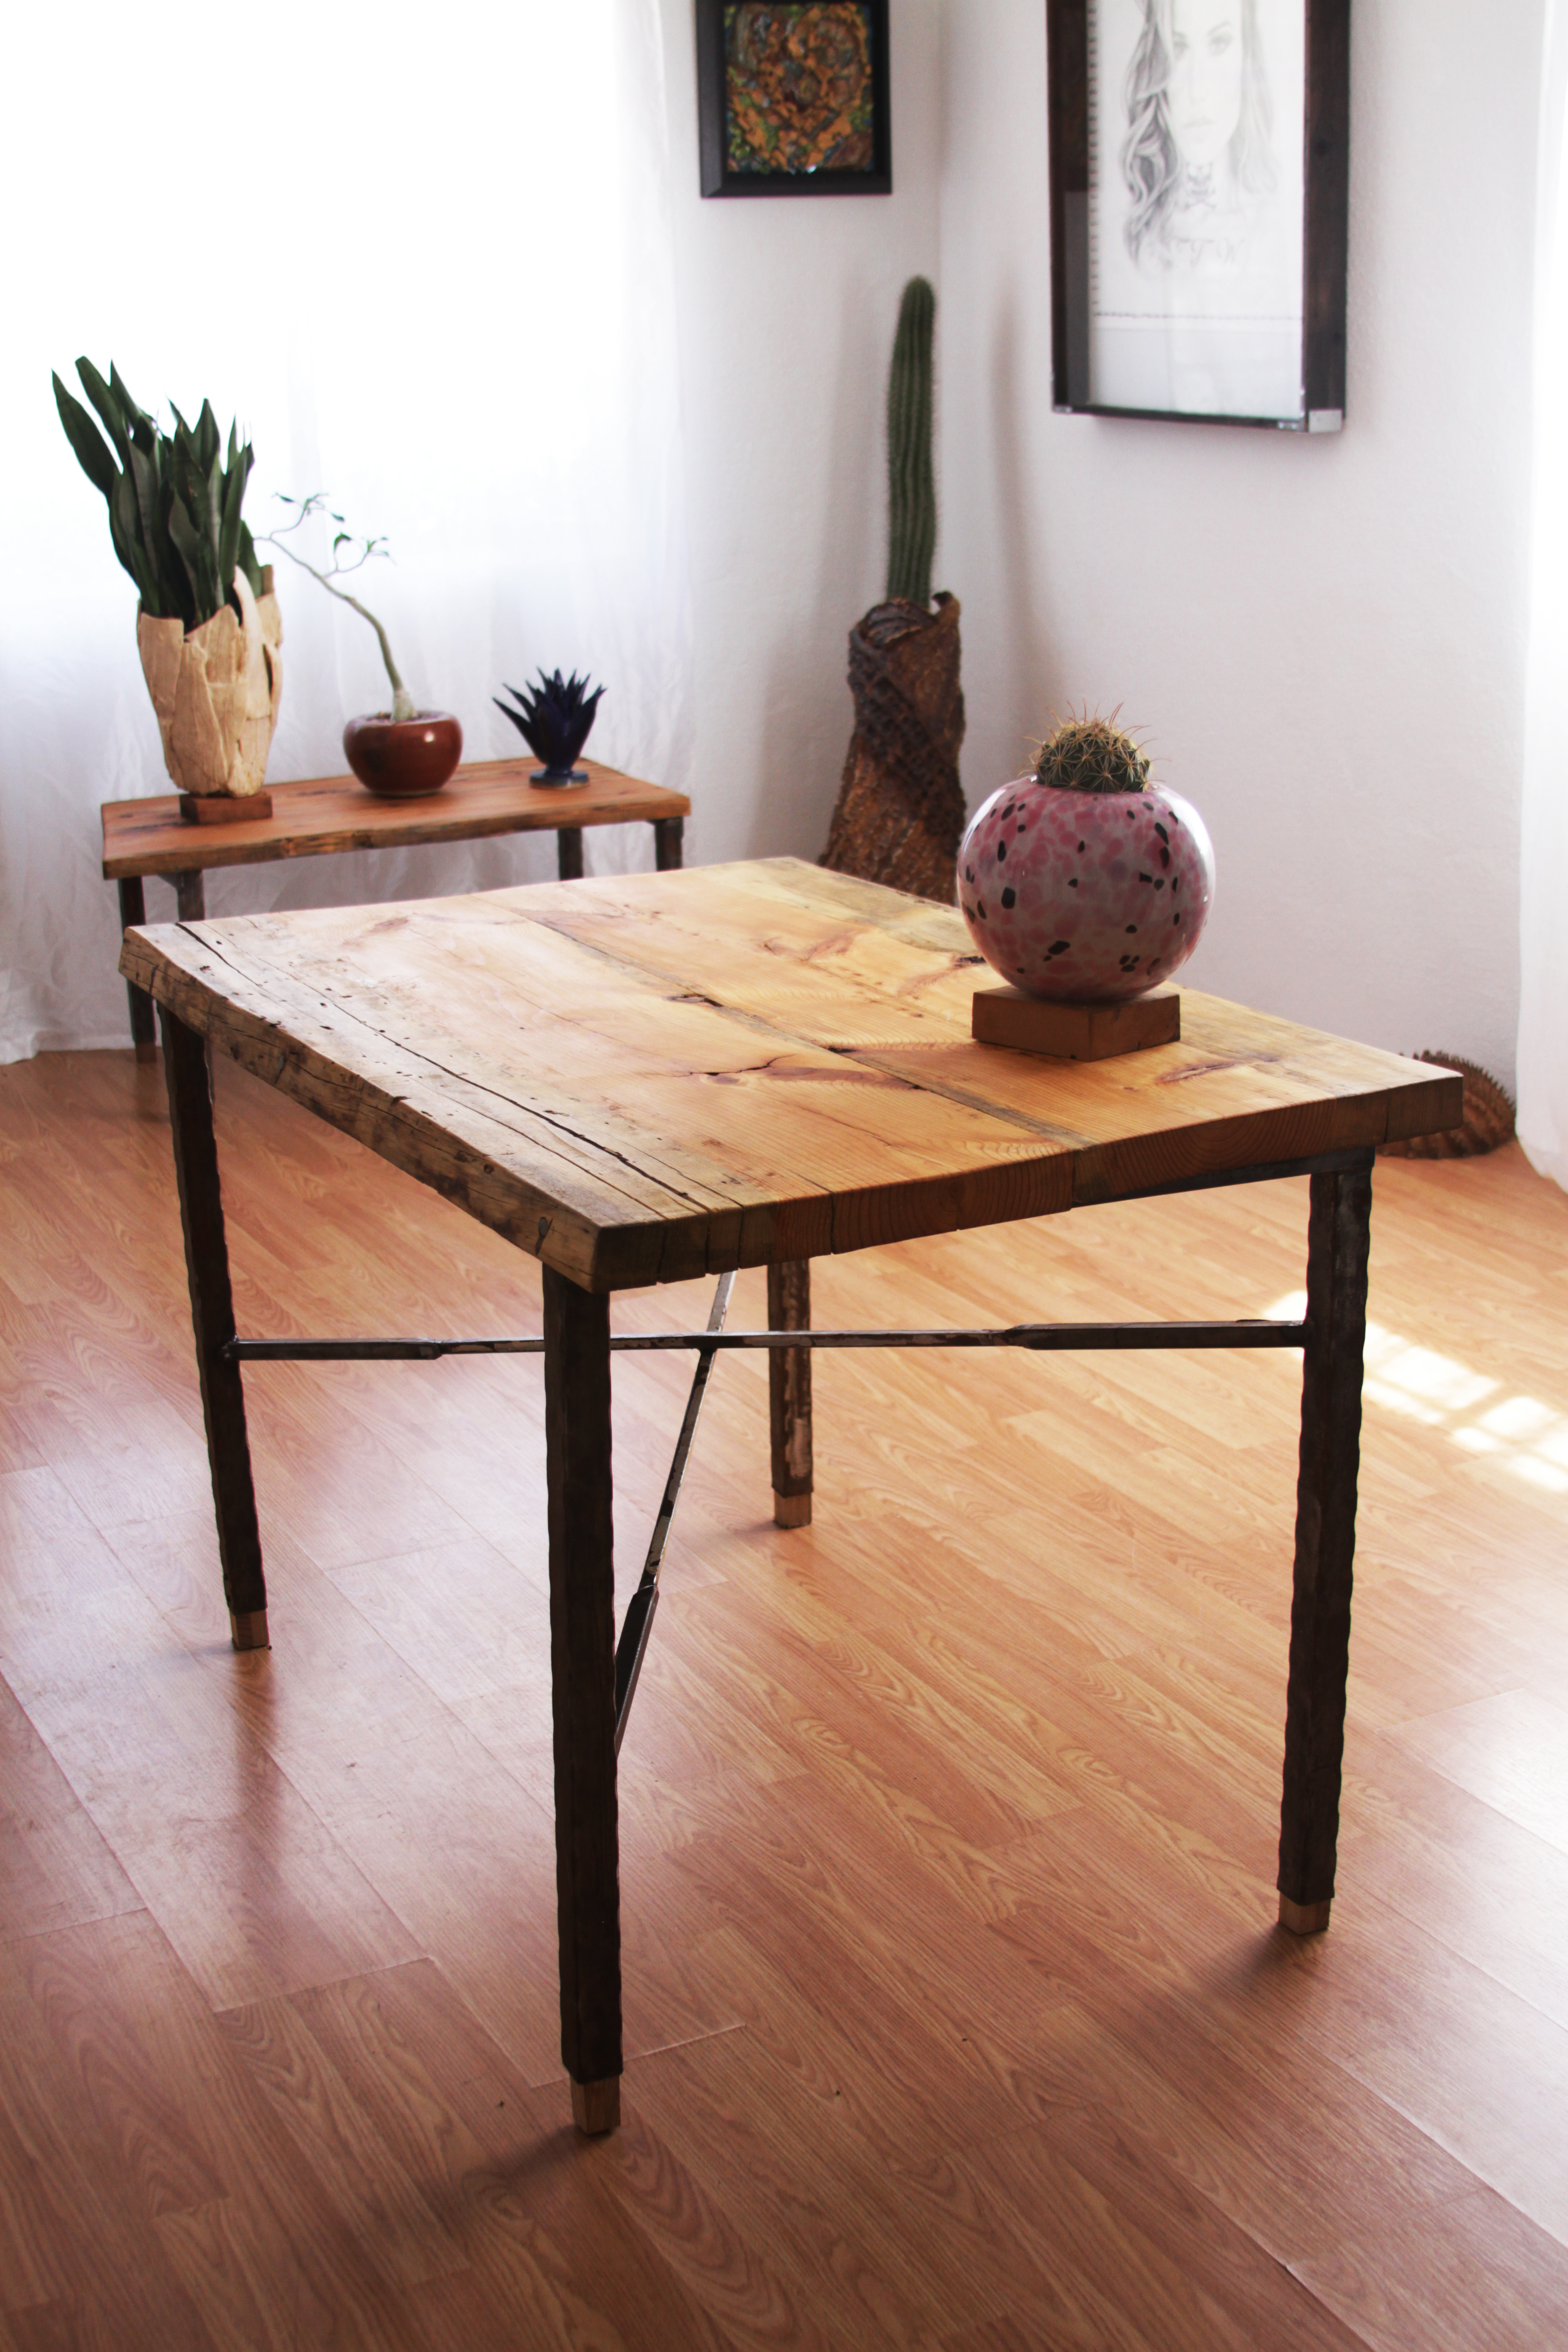 ponderosa pine dining table with matching coffee table